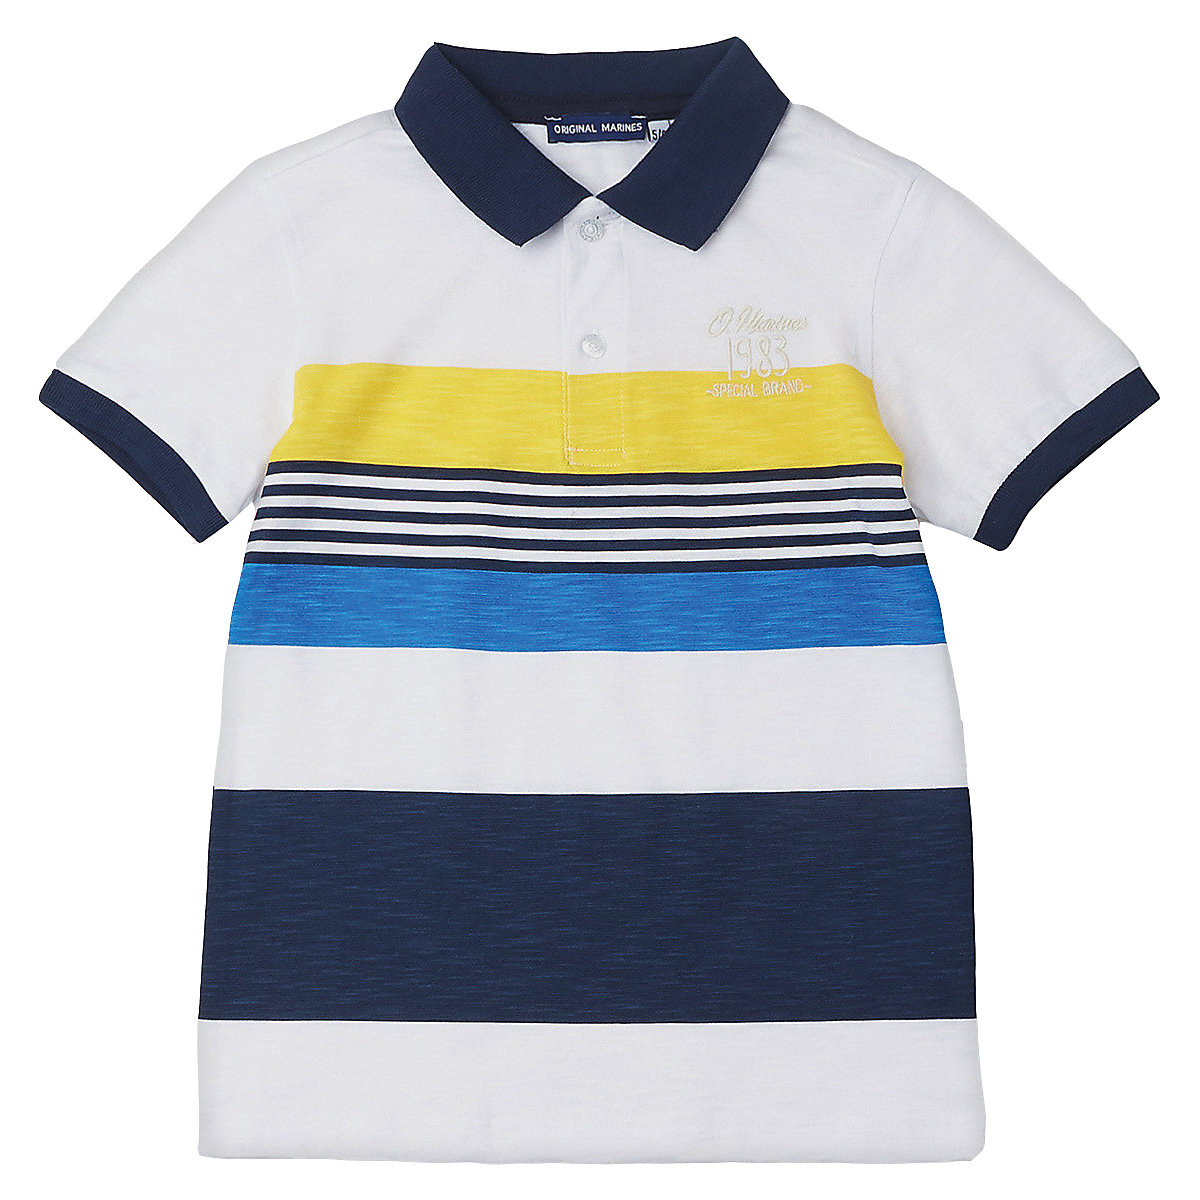 T-Shirts ORIGINAL MARINES 10830457 Children sClothing T-shirt with short sleeves polo shirt for boys and girls girls lace trim contrast ruffle hem striped t shirt